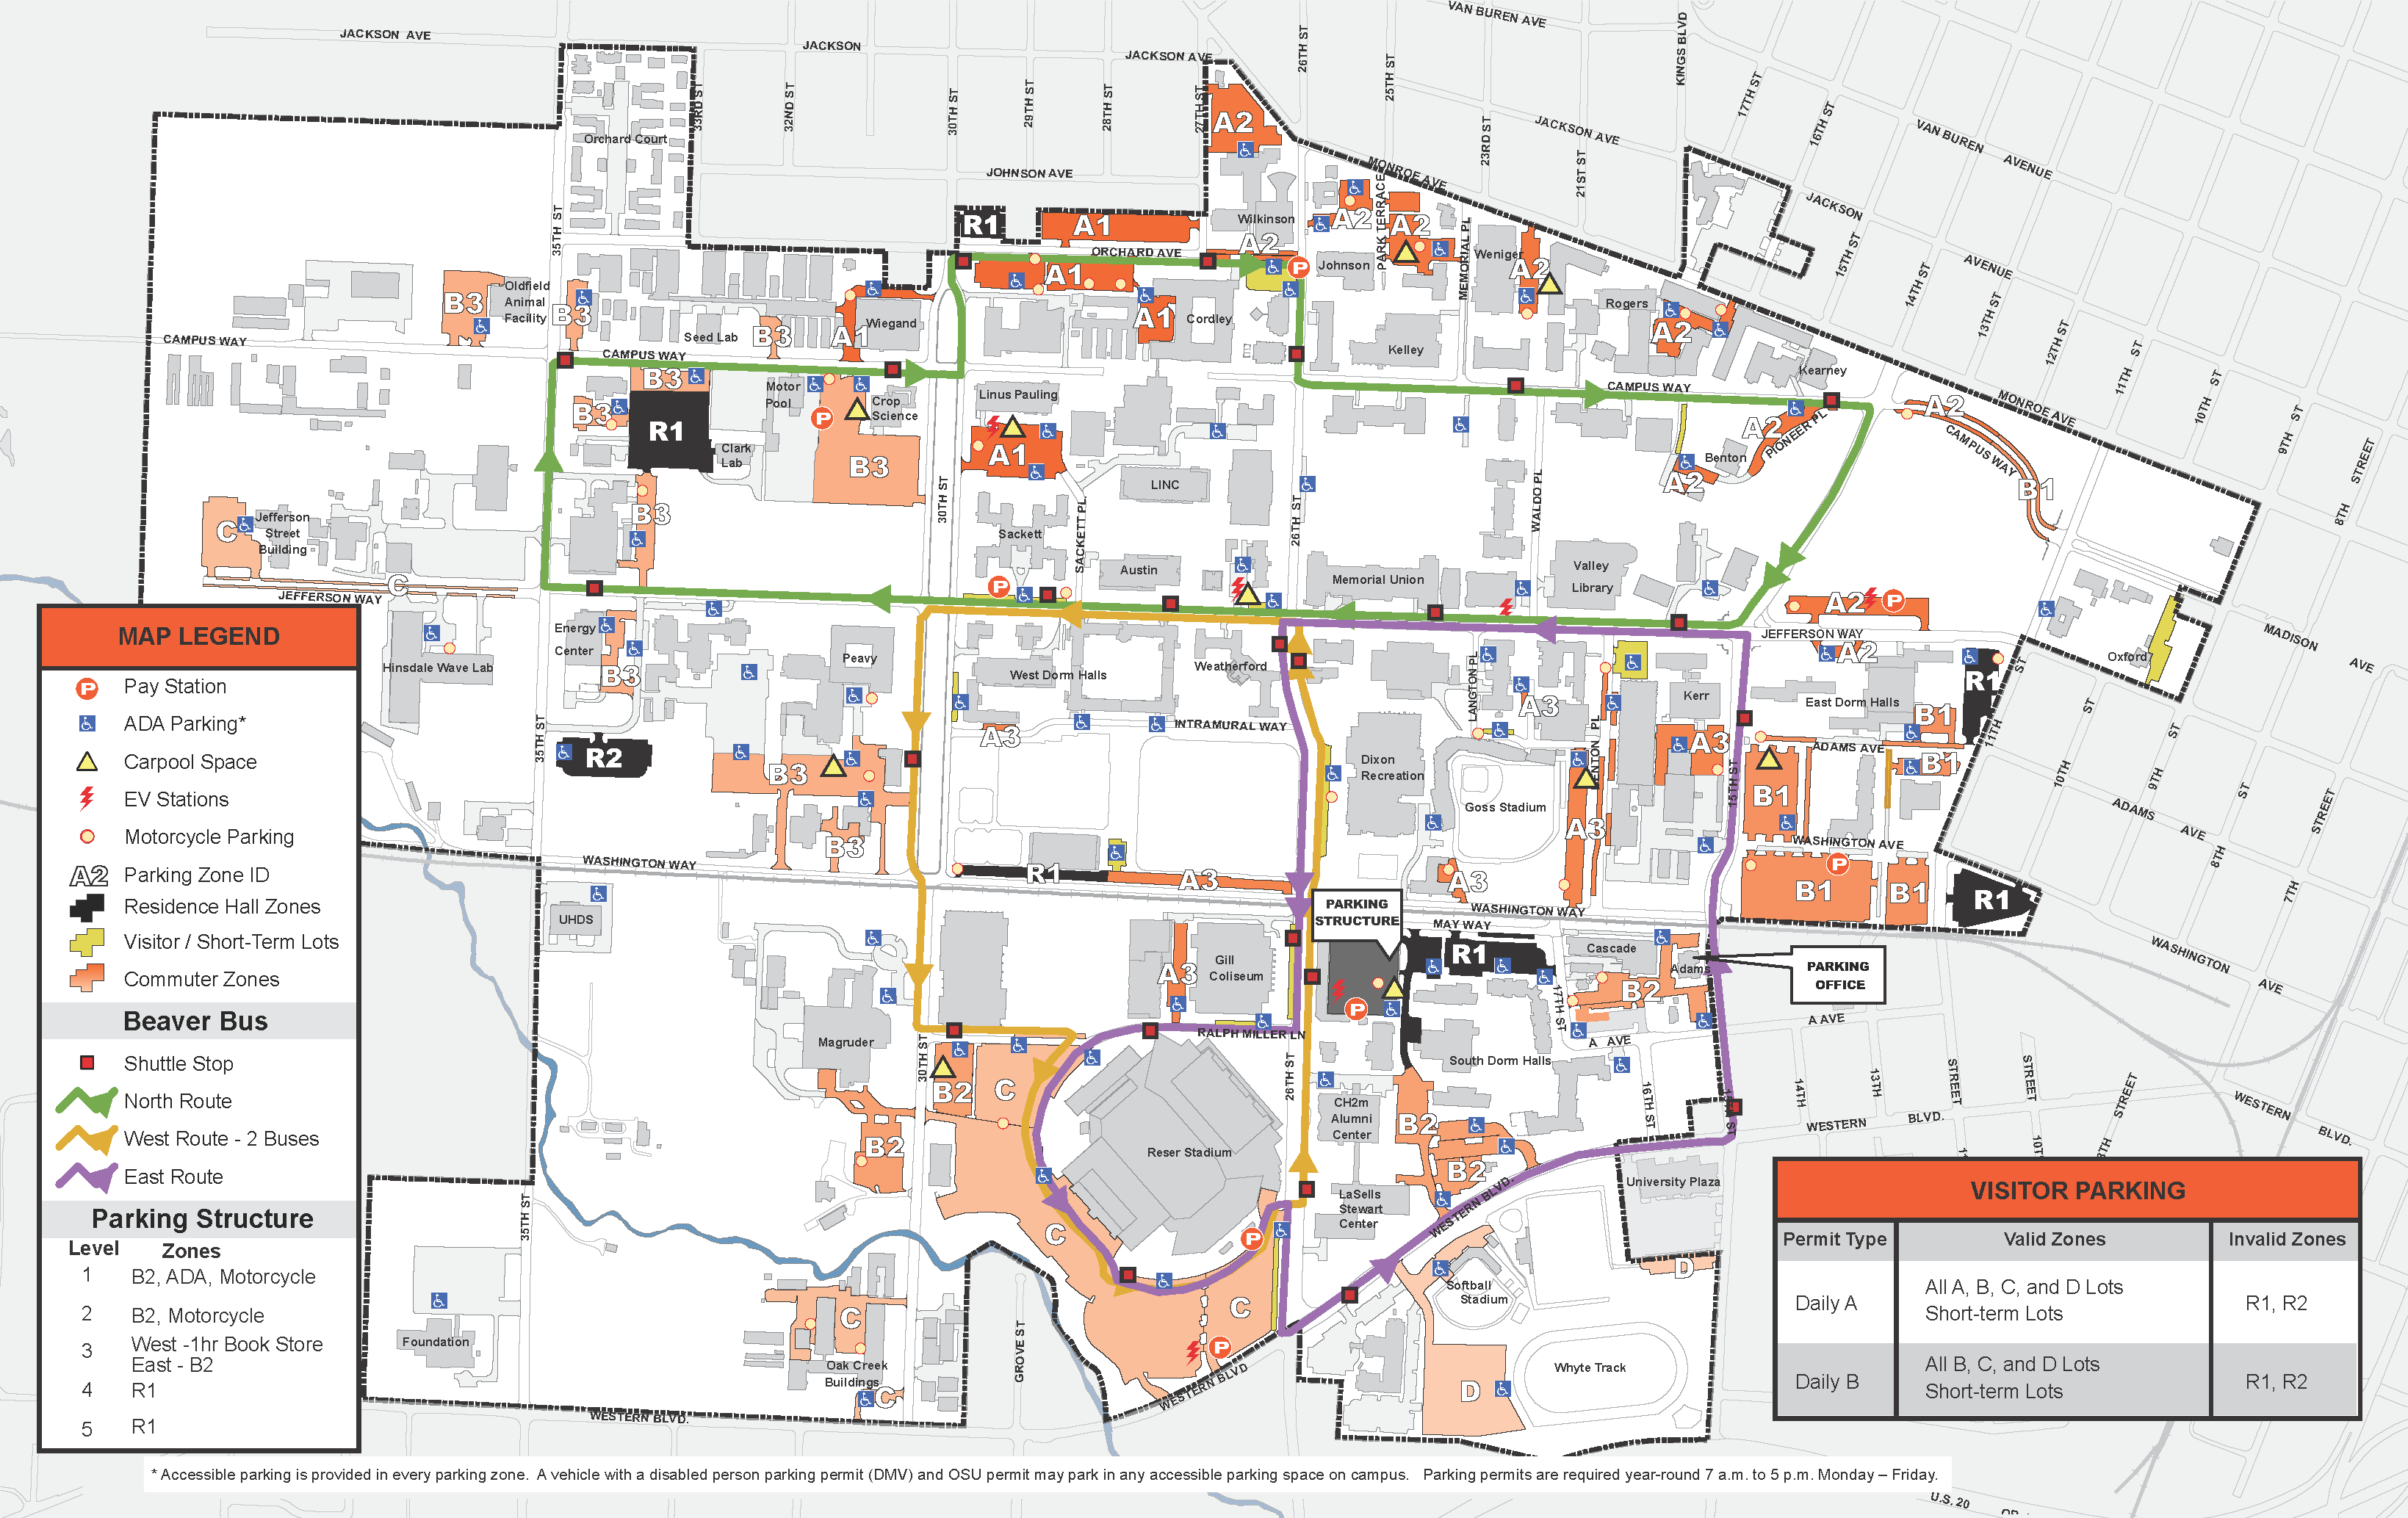 2016 Parking and Shuttle Map